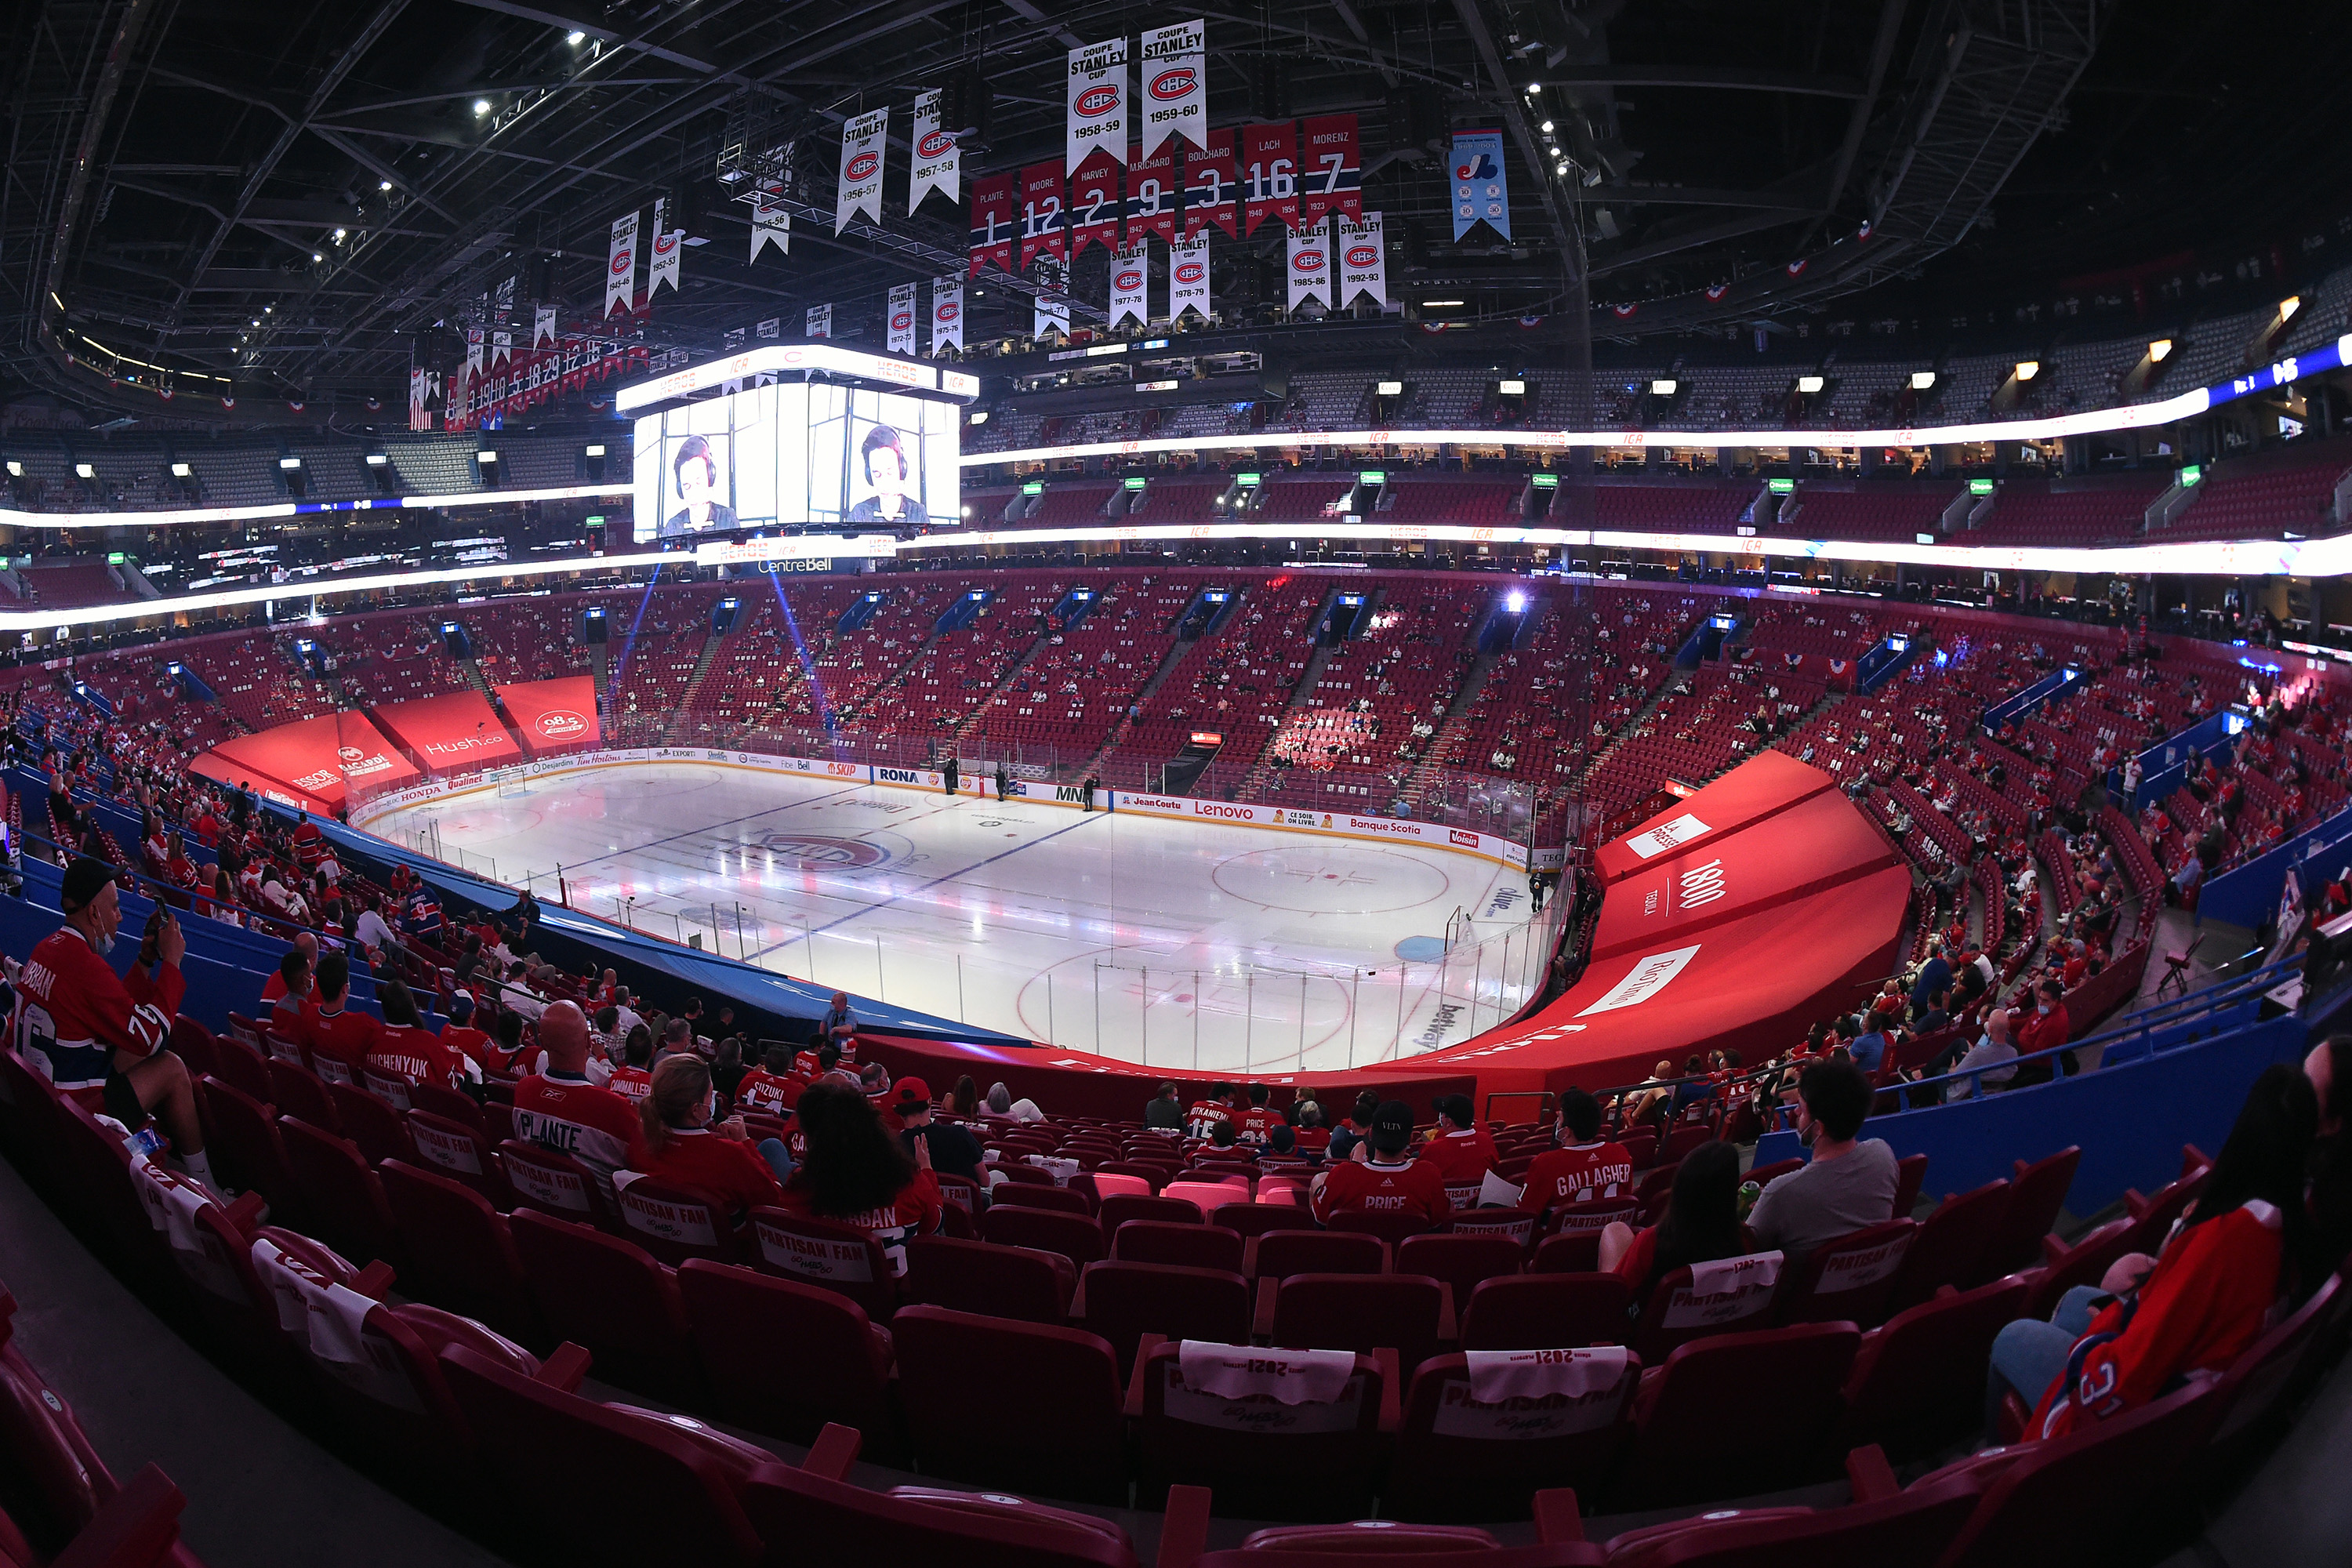 General view of the Bell Center in Game Four of the Second Round of the 2021 Stanley Cup Playof between the Montreal Canadiens and the Winnipeg Jets on June 7, 2021 in Montreal, Quebec, Canada.